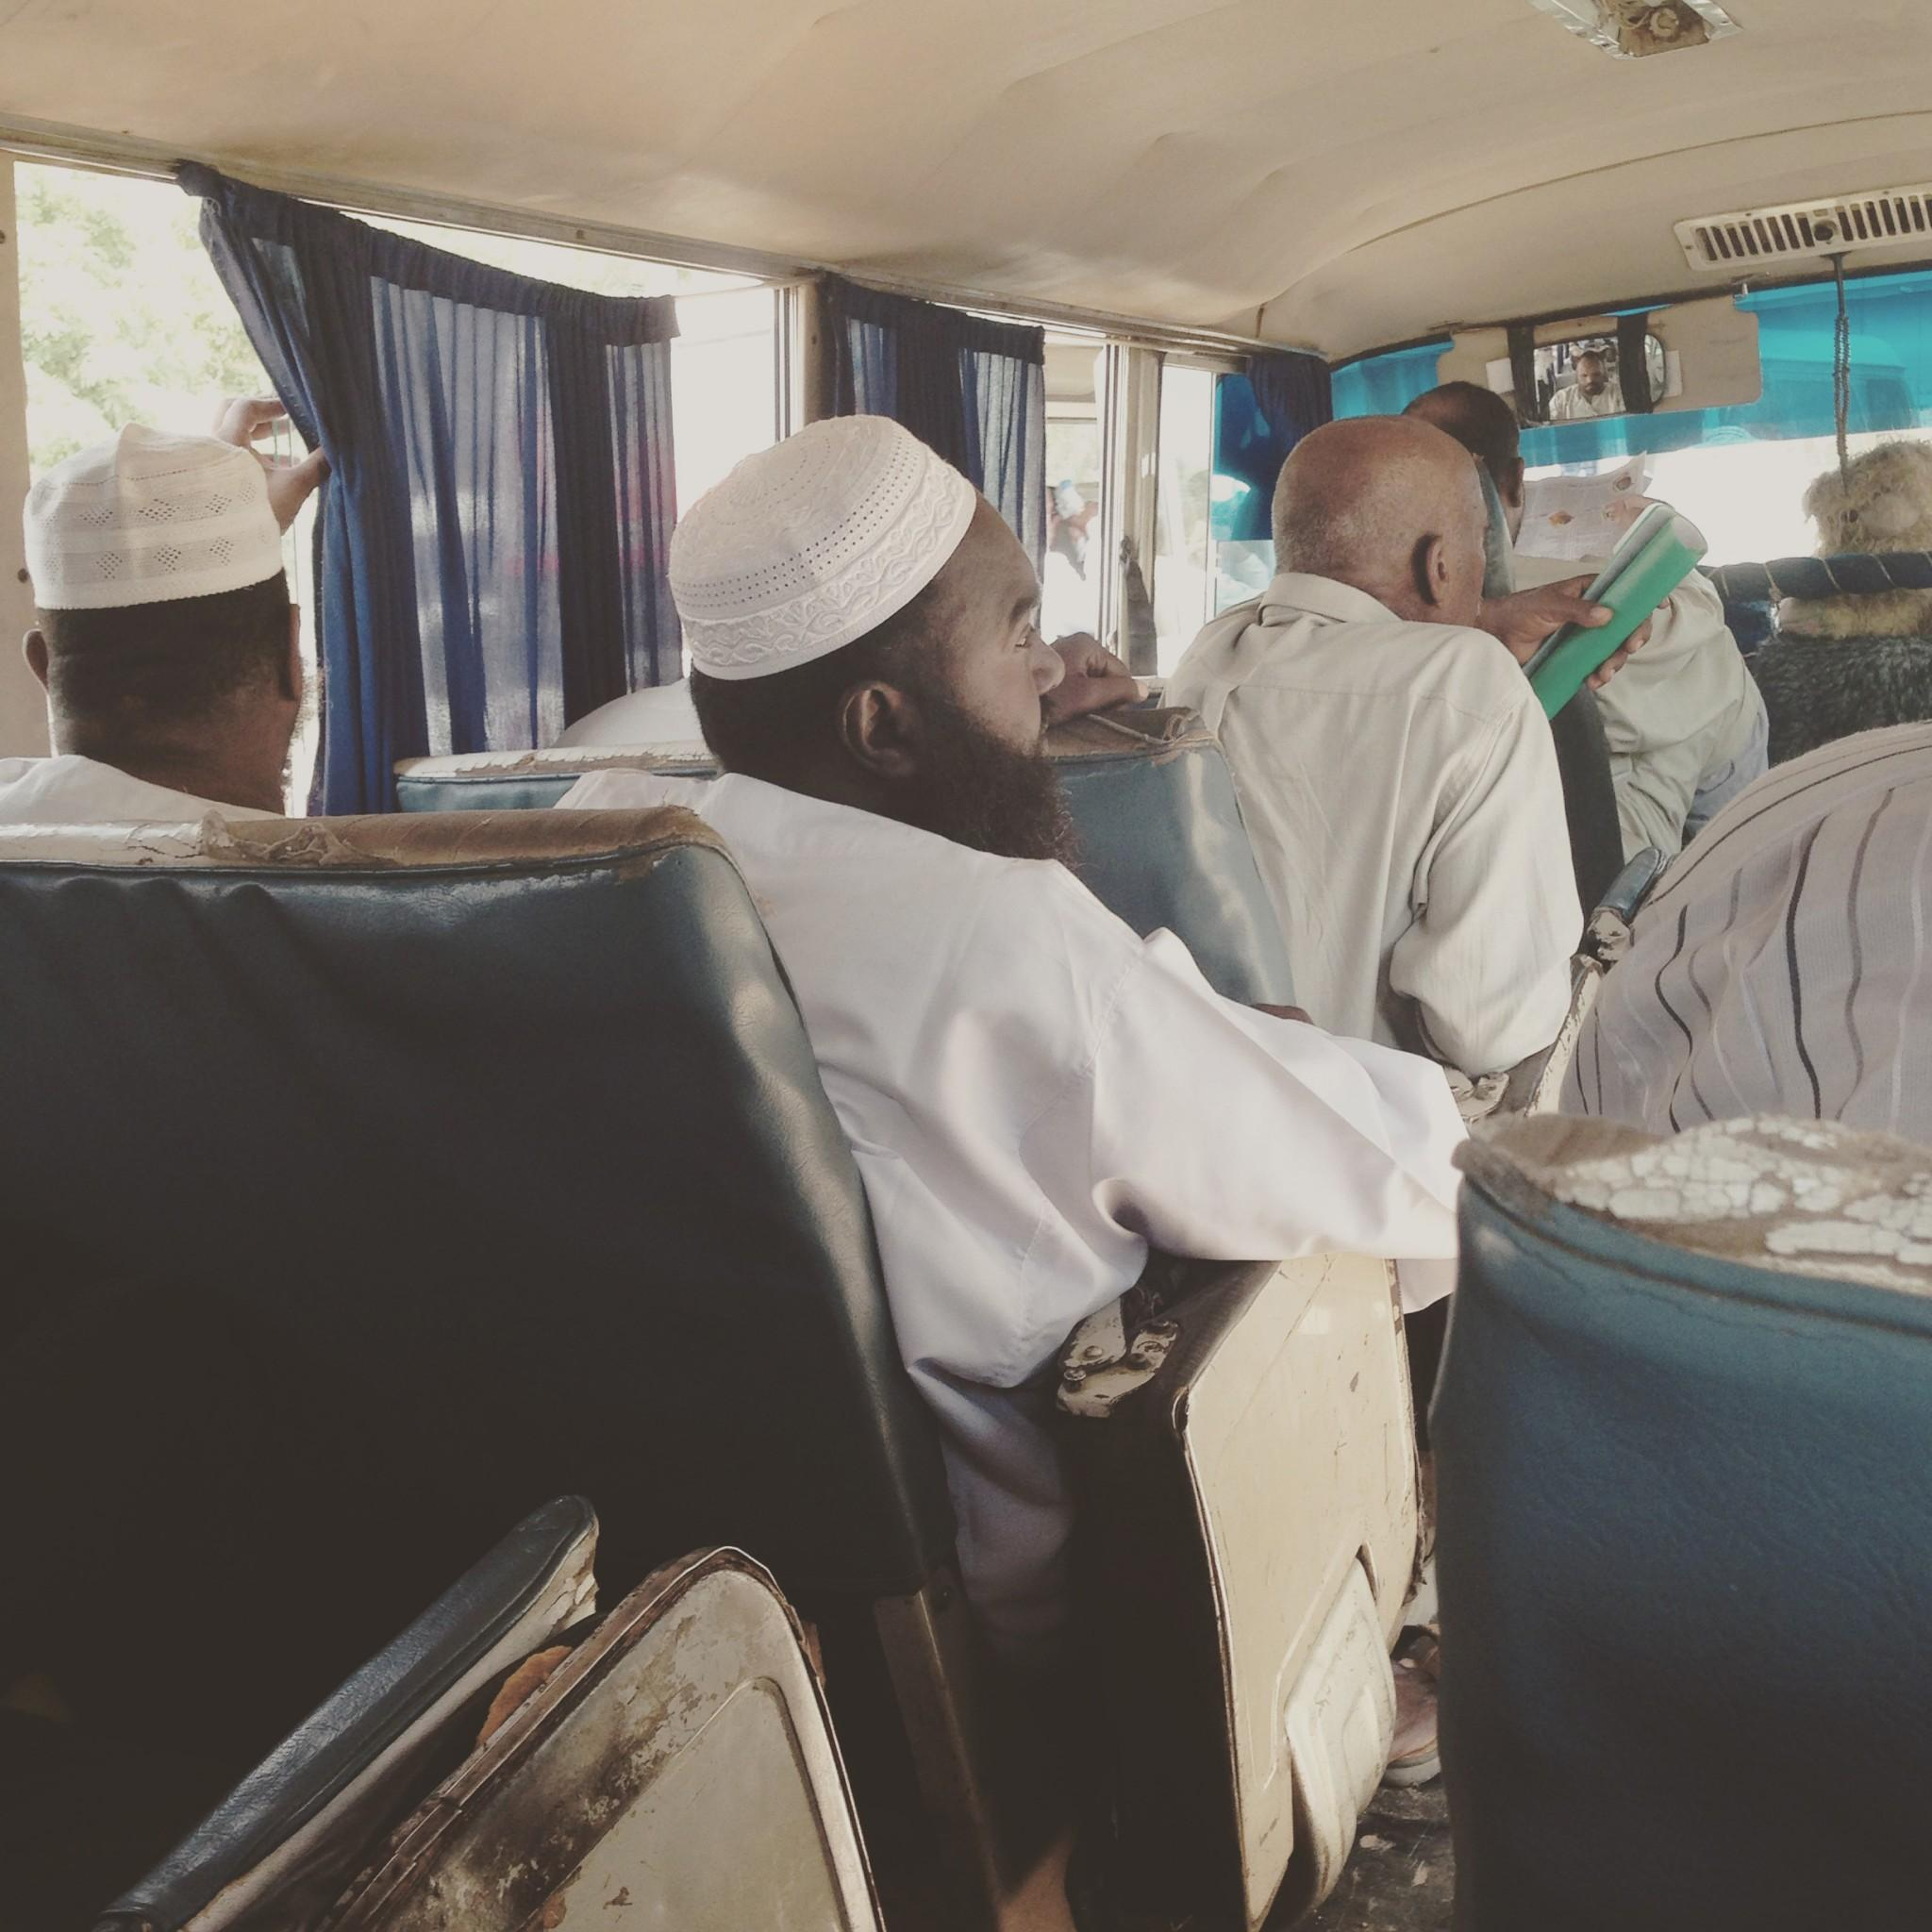 public transportation-in-Khartoum-Sudan-travel-guide